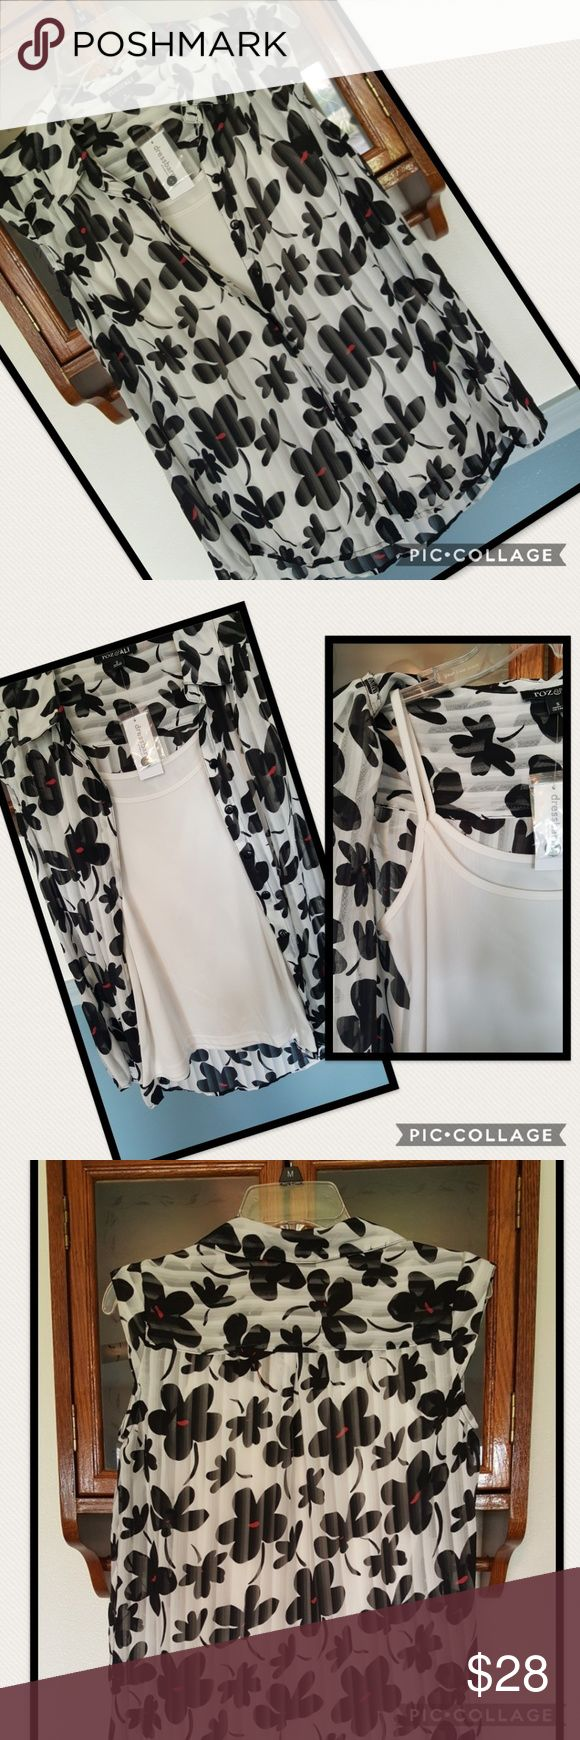 "🆕️🌸PRETTY BLOUSE🌸 Adorable black n white flower pattern blouse, with a white tank. Button up,  sleeveless.  🌸SIZE SMALL  🌸100 % Polyester  🌸ARMPIT TO ARMPIT 19"" 🌸ARMPIT DOWN LENGHT 16 1/2""  💛I love to consider all reasonable offers. 🚫No trades Dress Barn Tops Blouses"